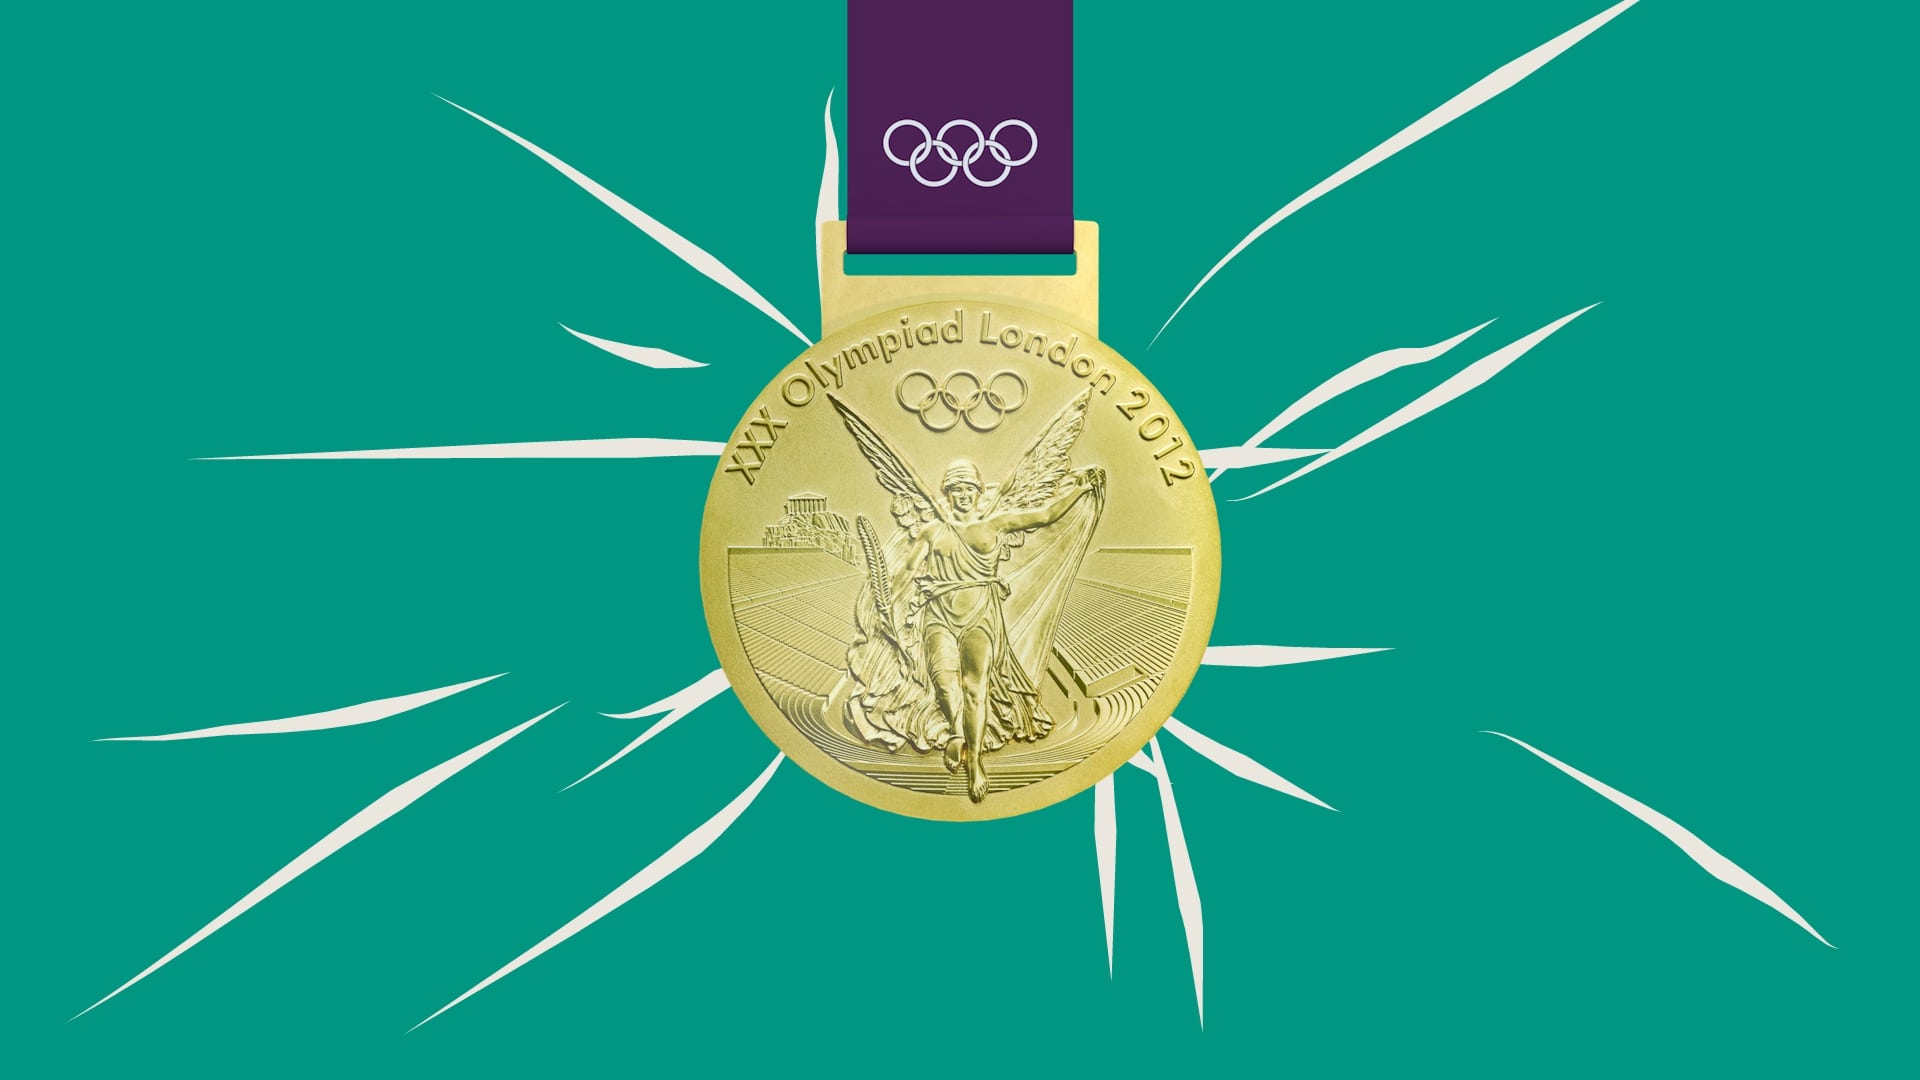 animated film for an event - olympic gold medal